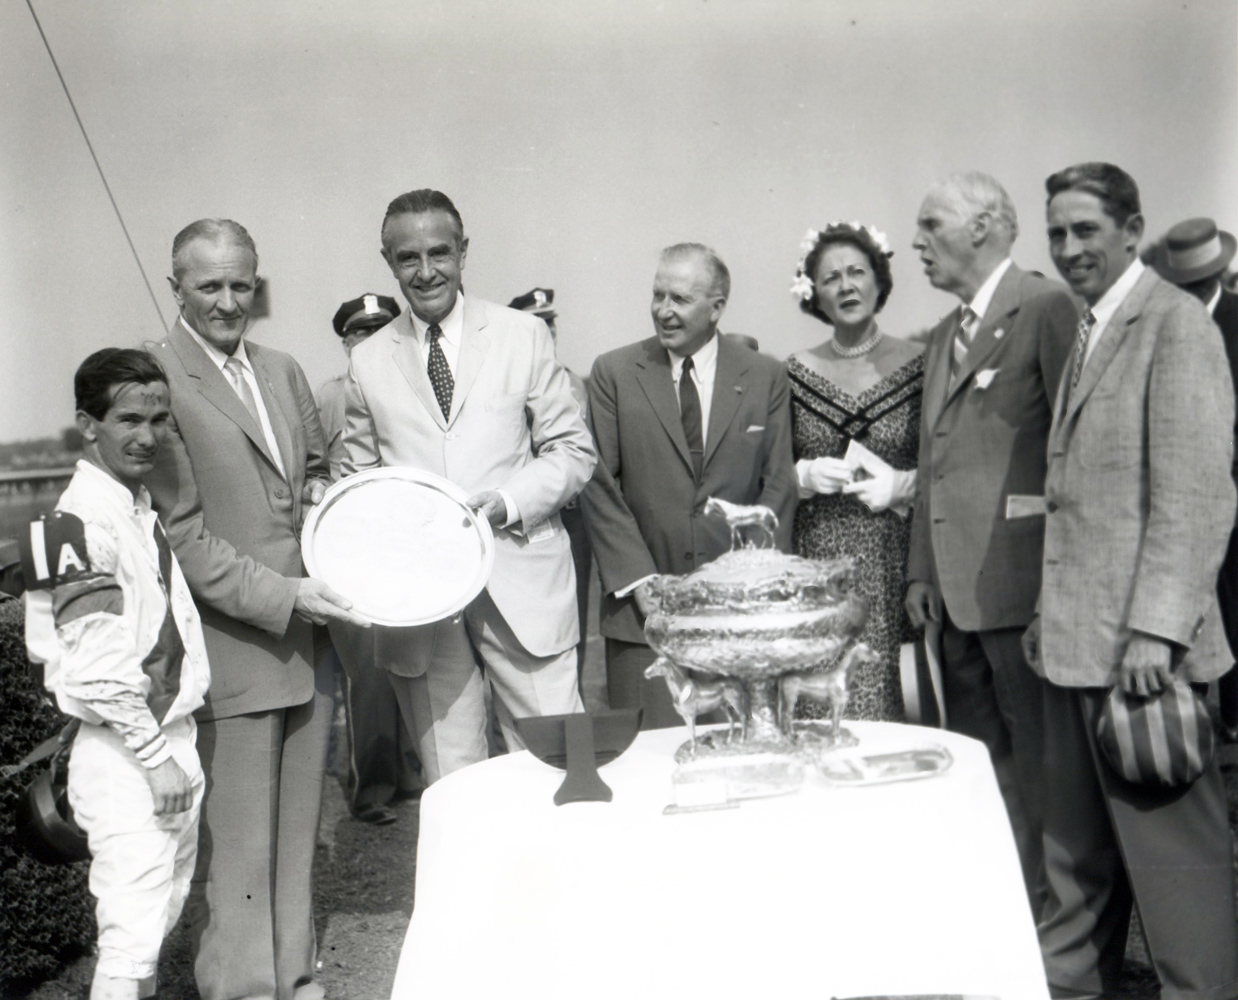 New York Governor Averill Harriman presents jockey Bill Shoemaker at far left, owner Ralph Lowe next to him, and trainer John Nerud at far right with the 1957 Belmont Stakes trophy (Keeneland Library Morgan Collection/Museum Collection)